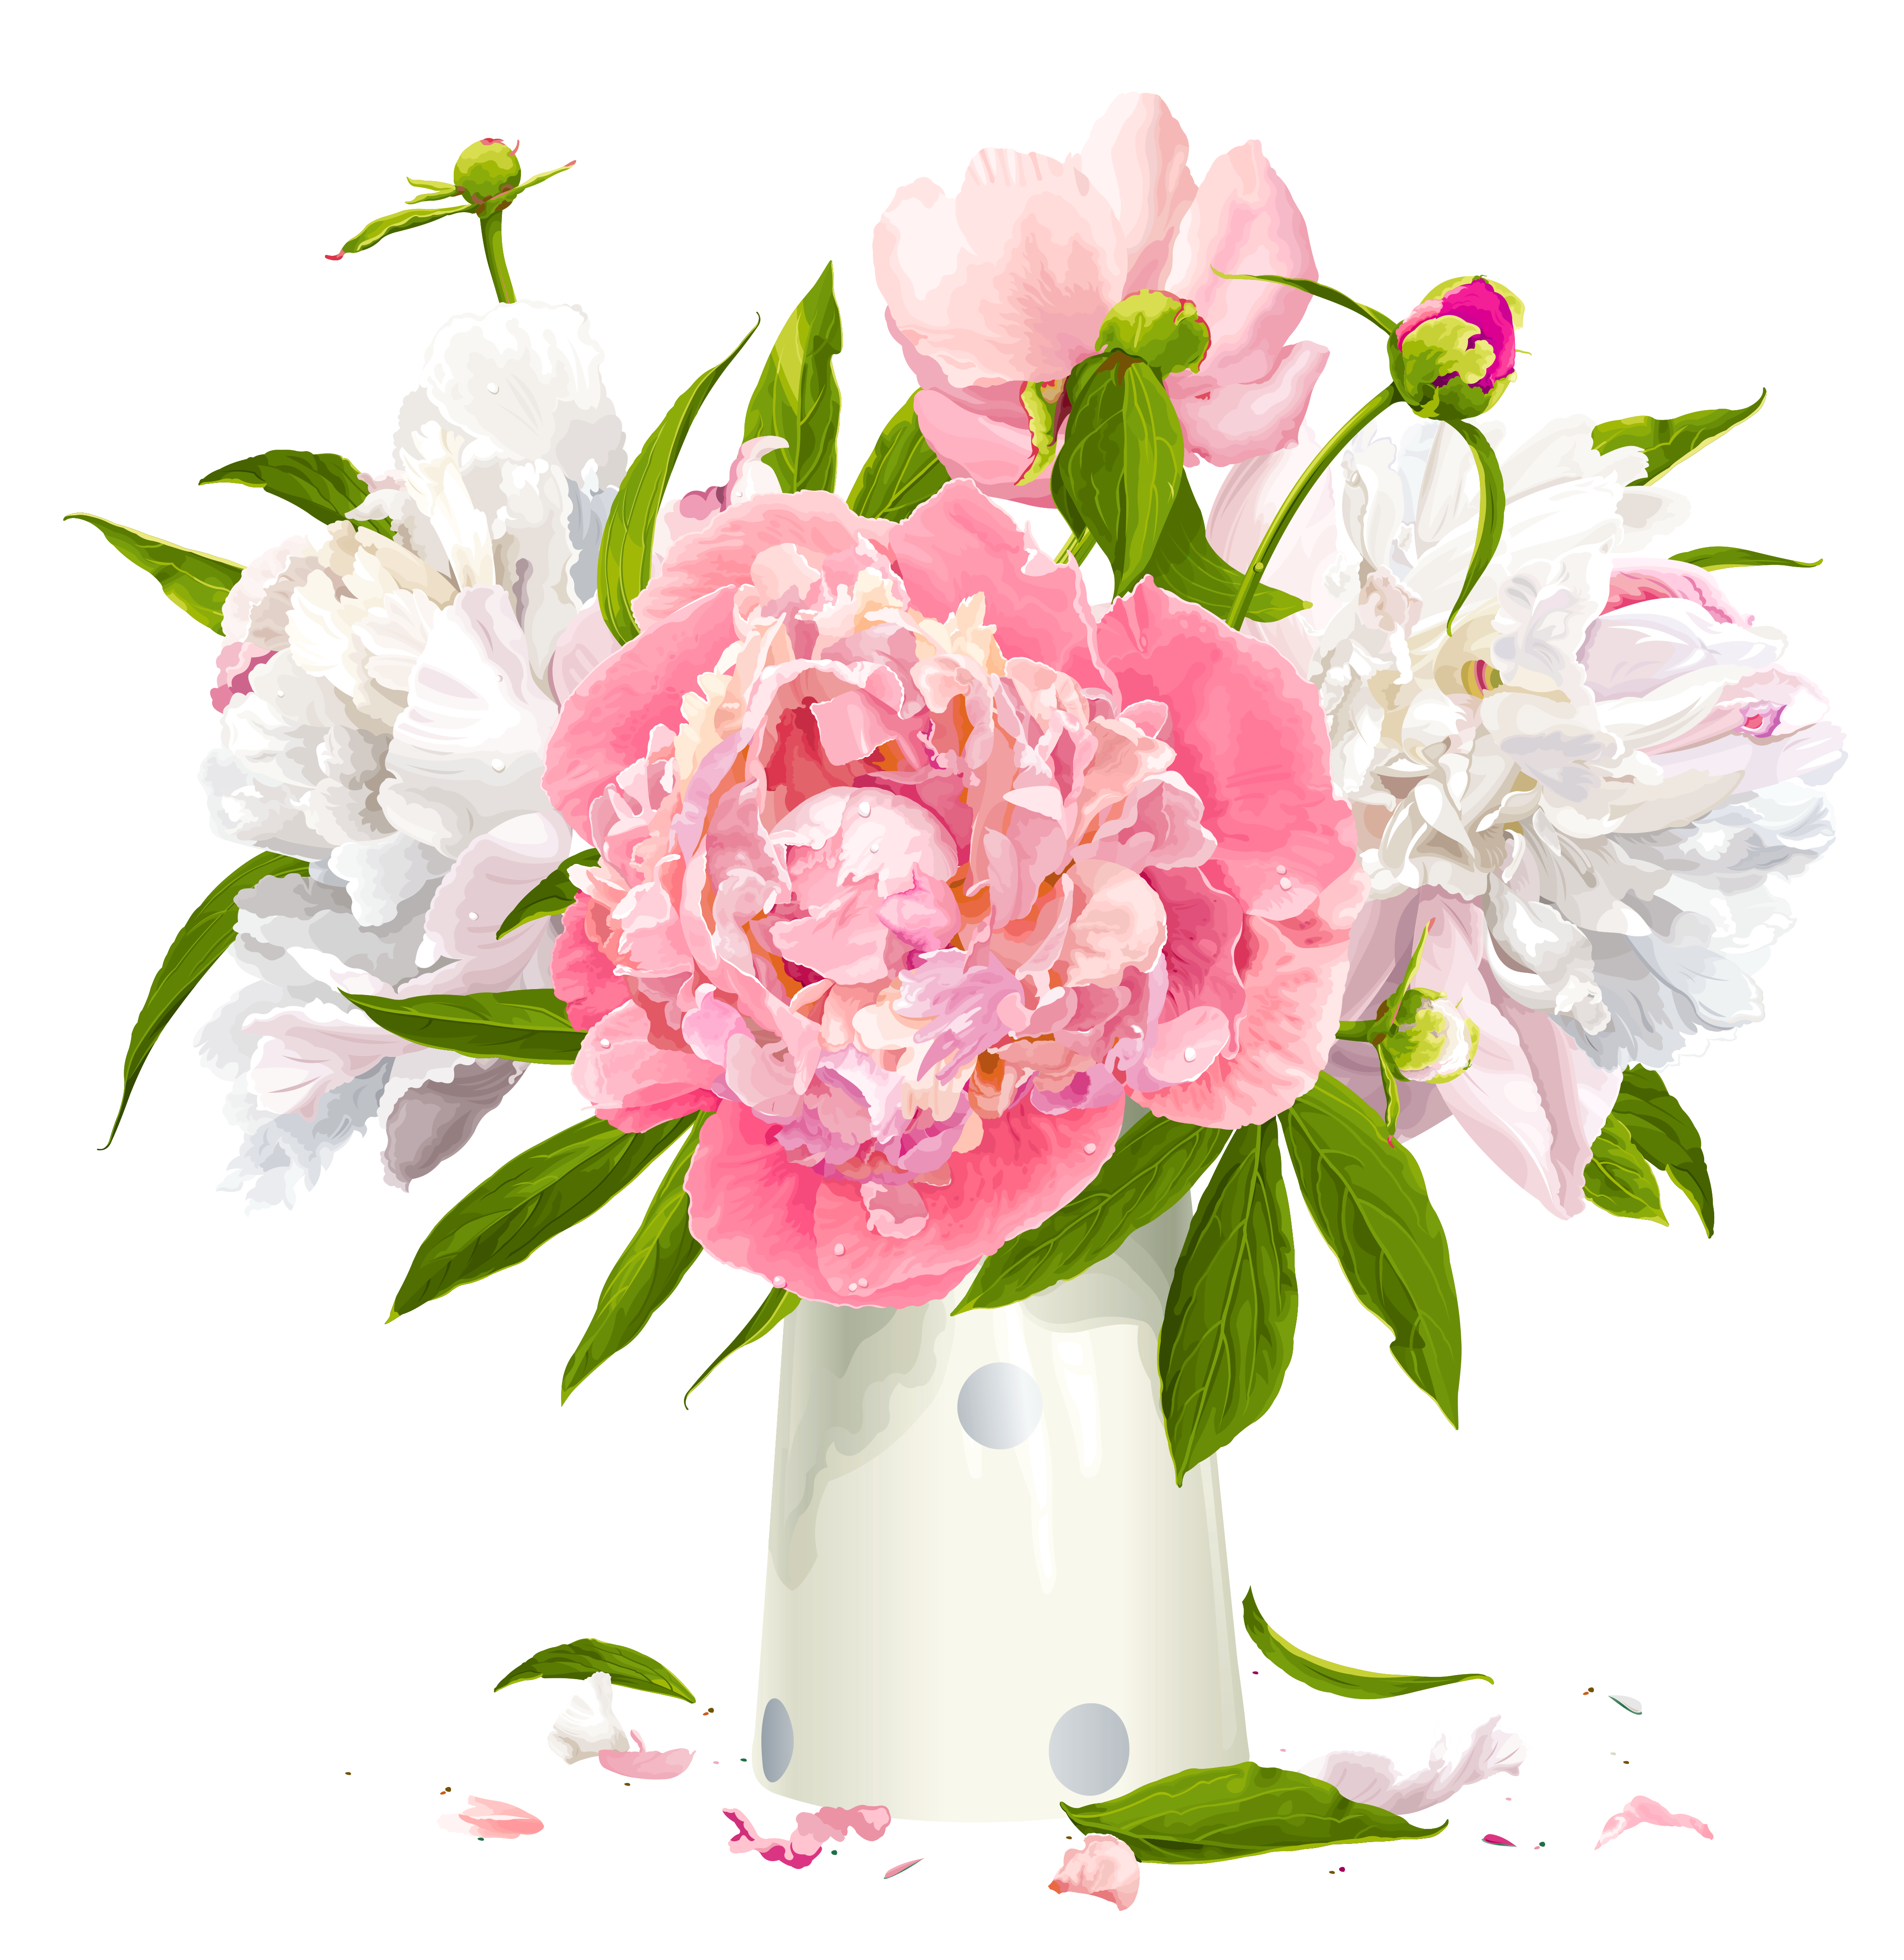 picture black and white stock Peonies clipart. Vase with white and